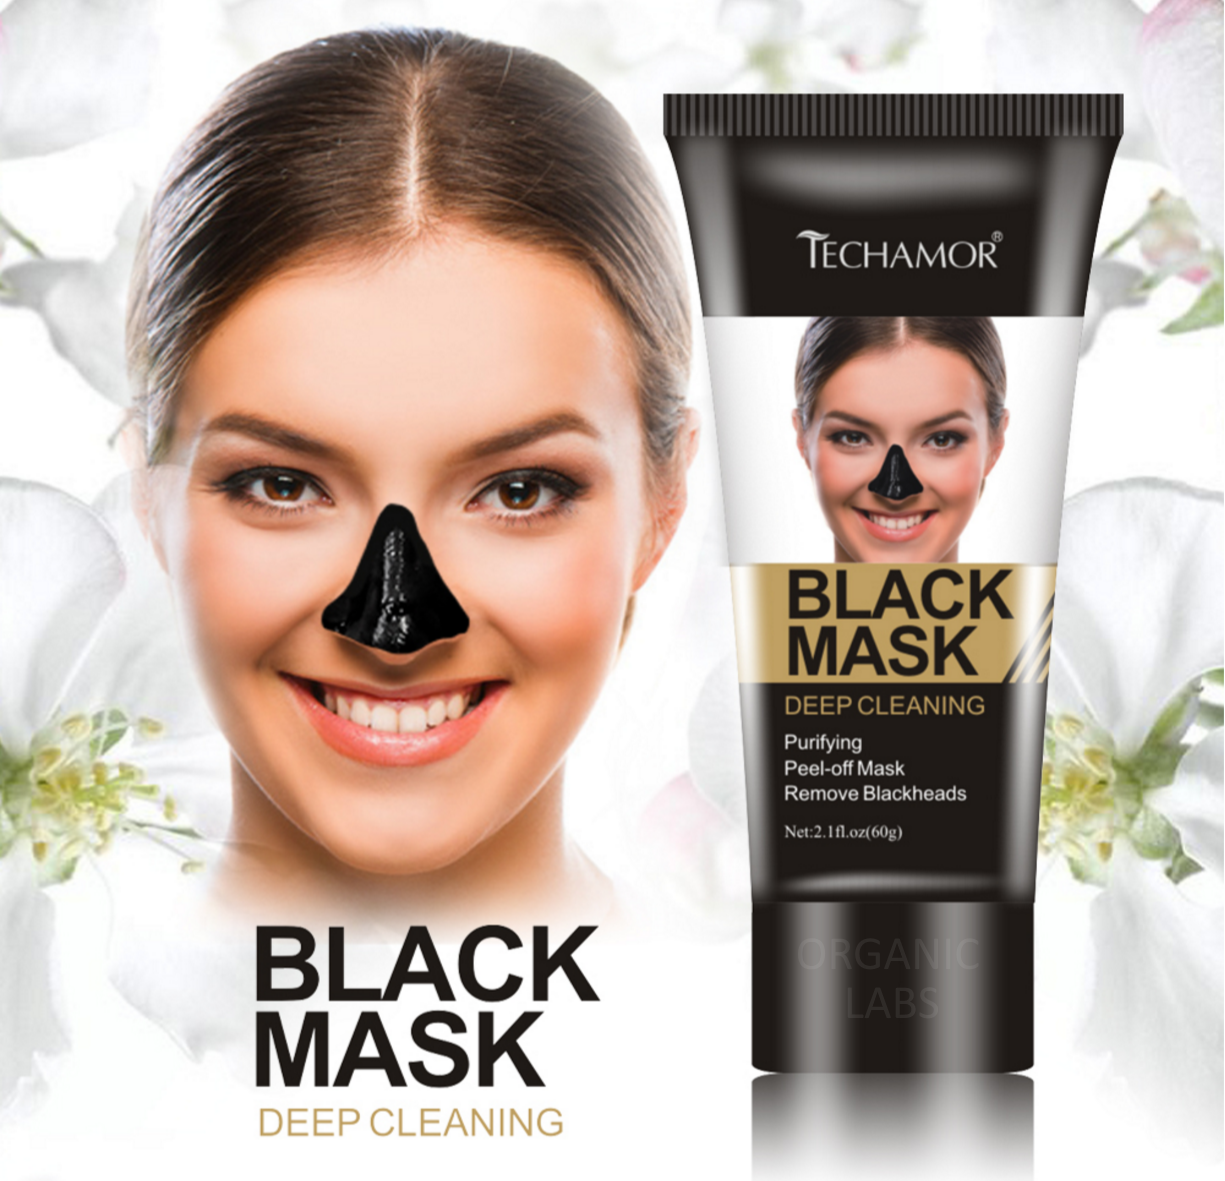 BLACK MASK - BLACKHEAD REMOVER - ACNE BLEMISH REMOVER BAMBOO CHARCOAL FACIAL MASK